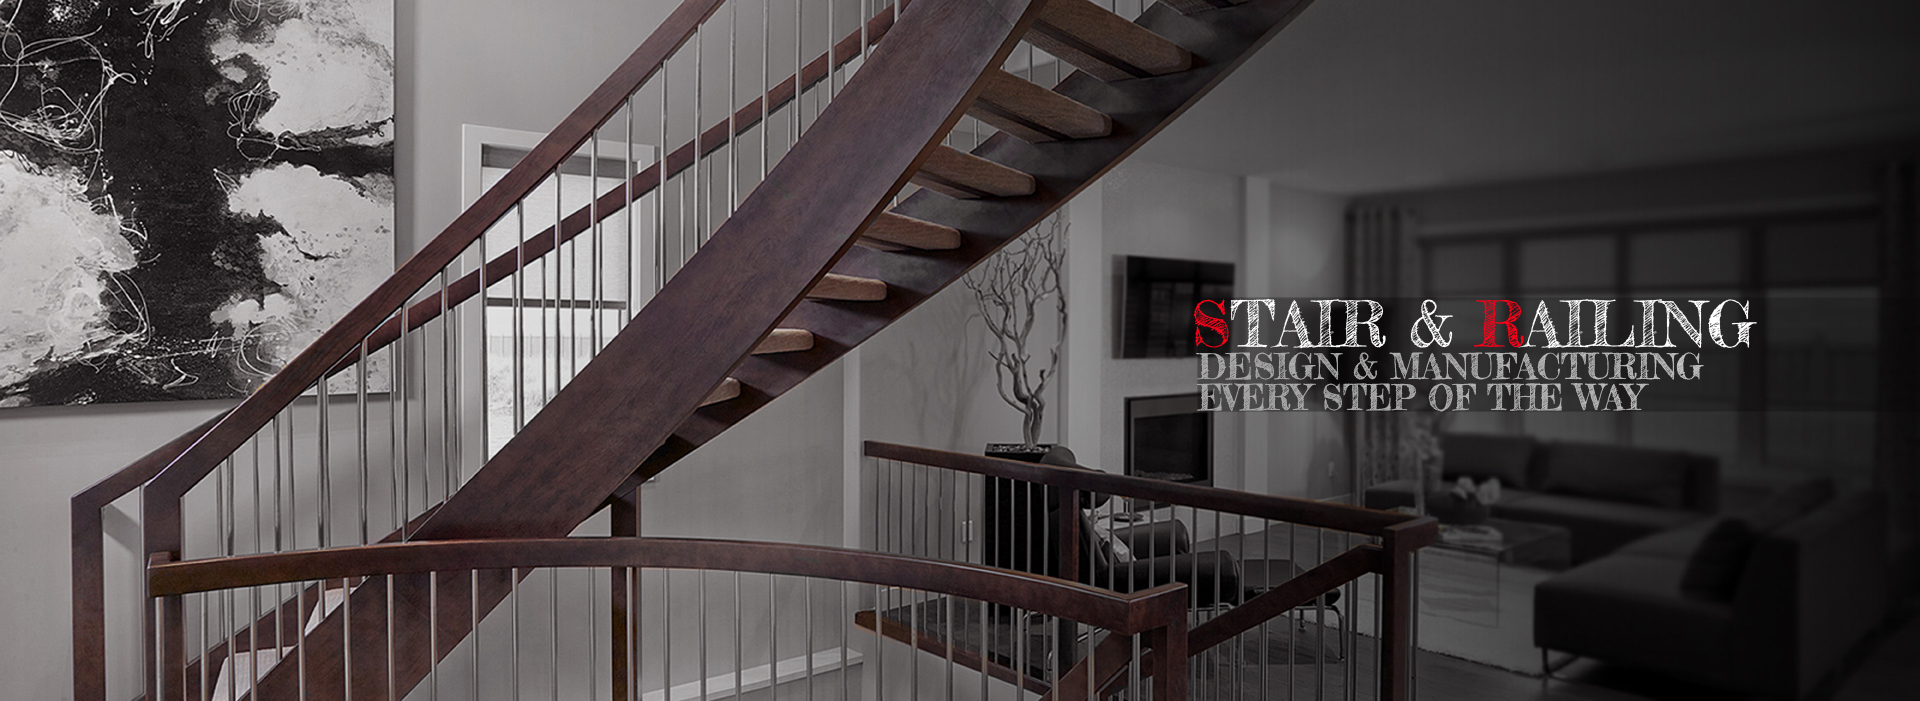 stair railing curved custom spindle newel post